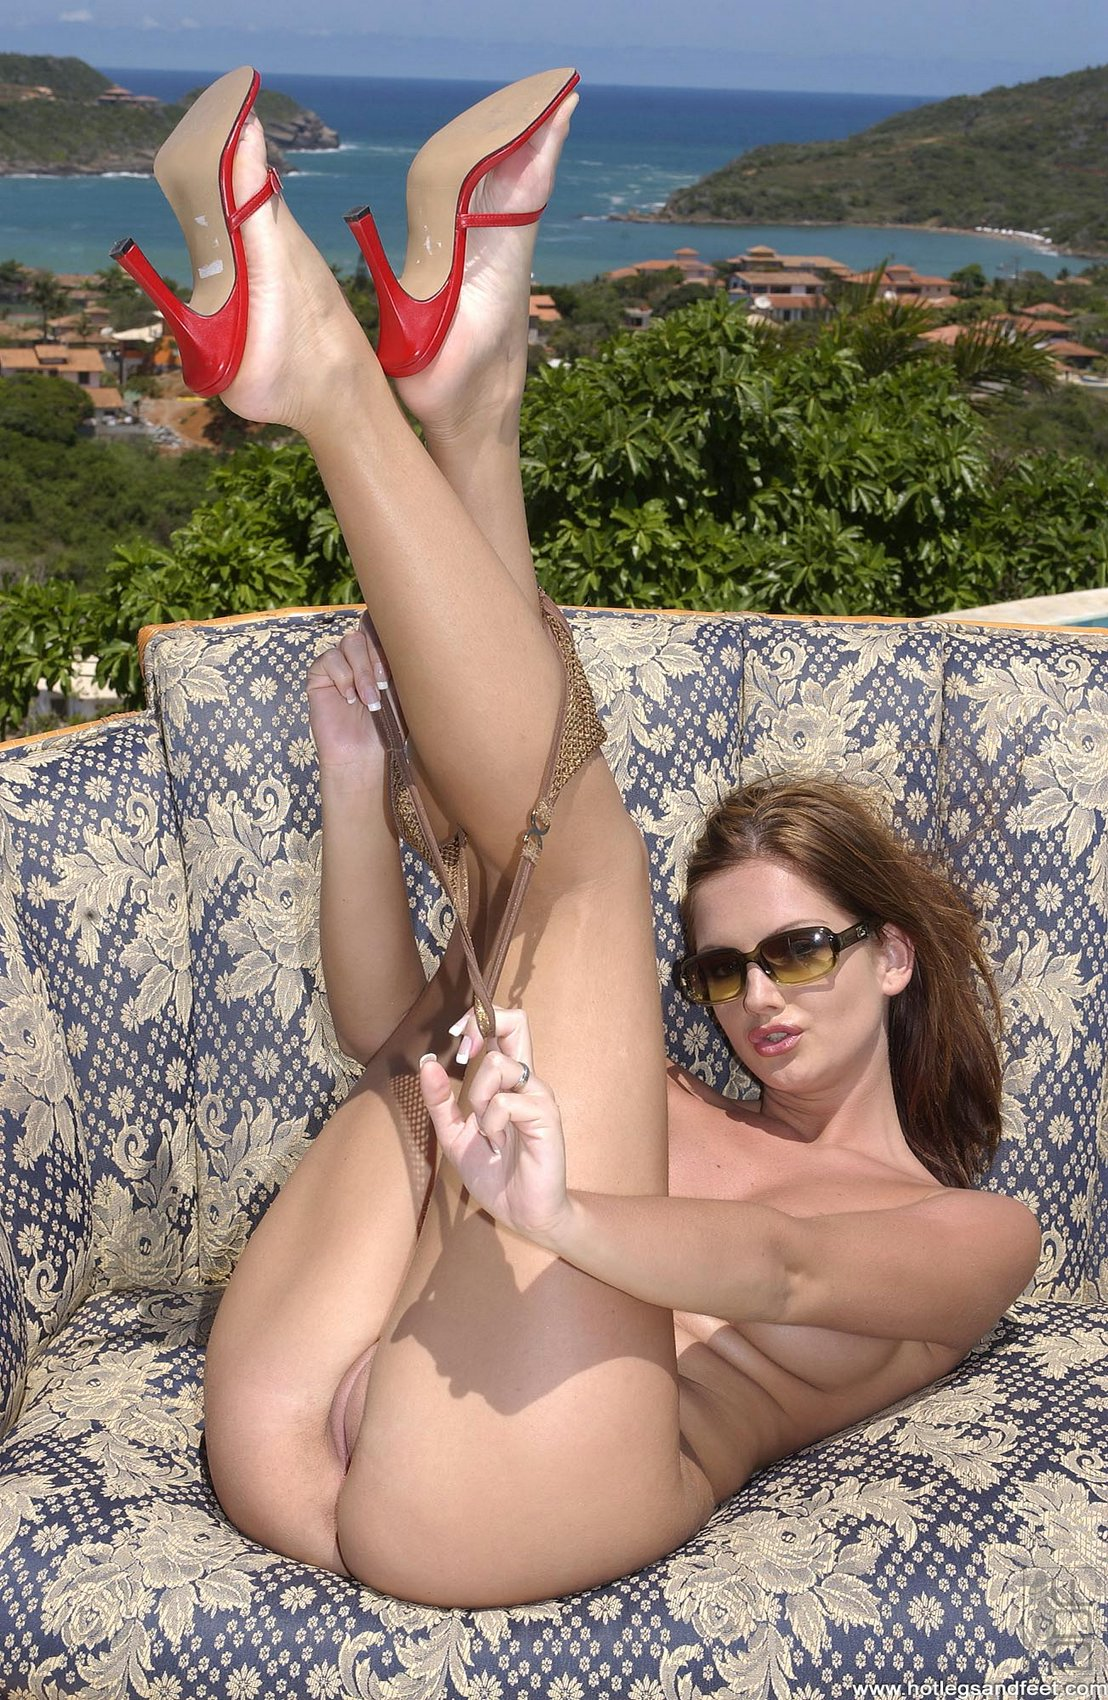 Sandra Shine showing off her amazing legs and feet outdoor ...